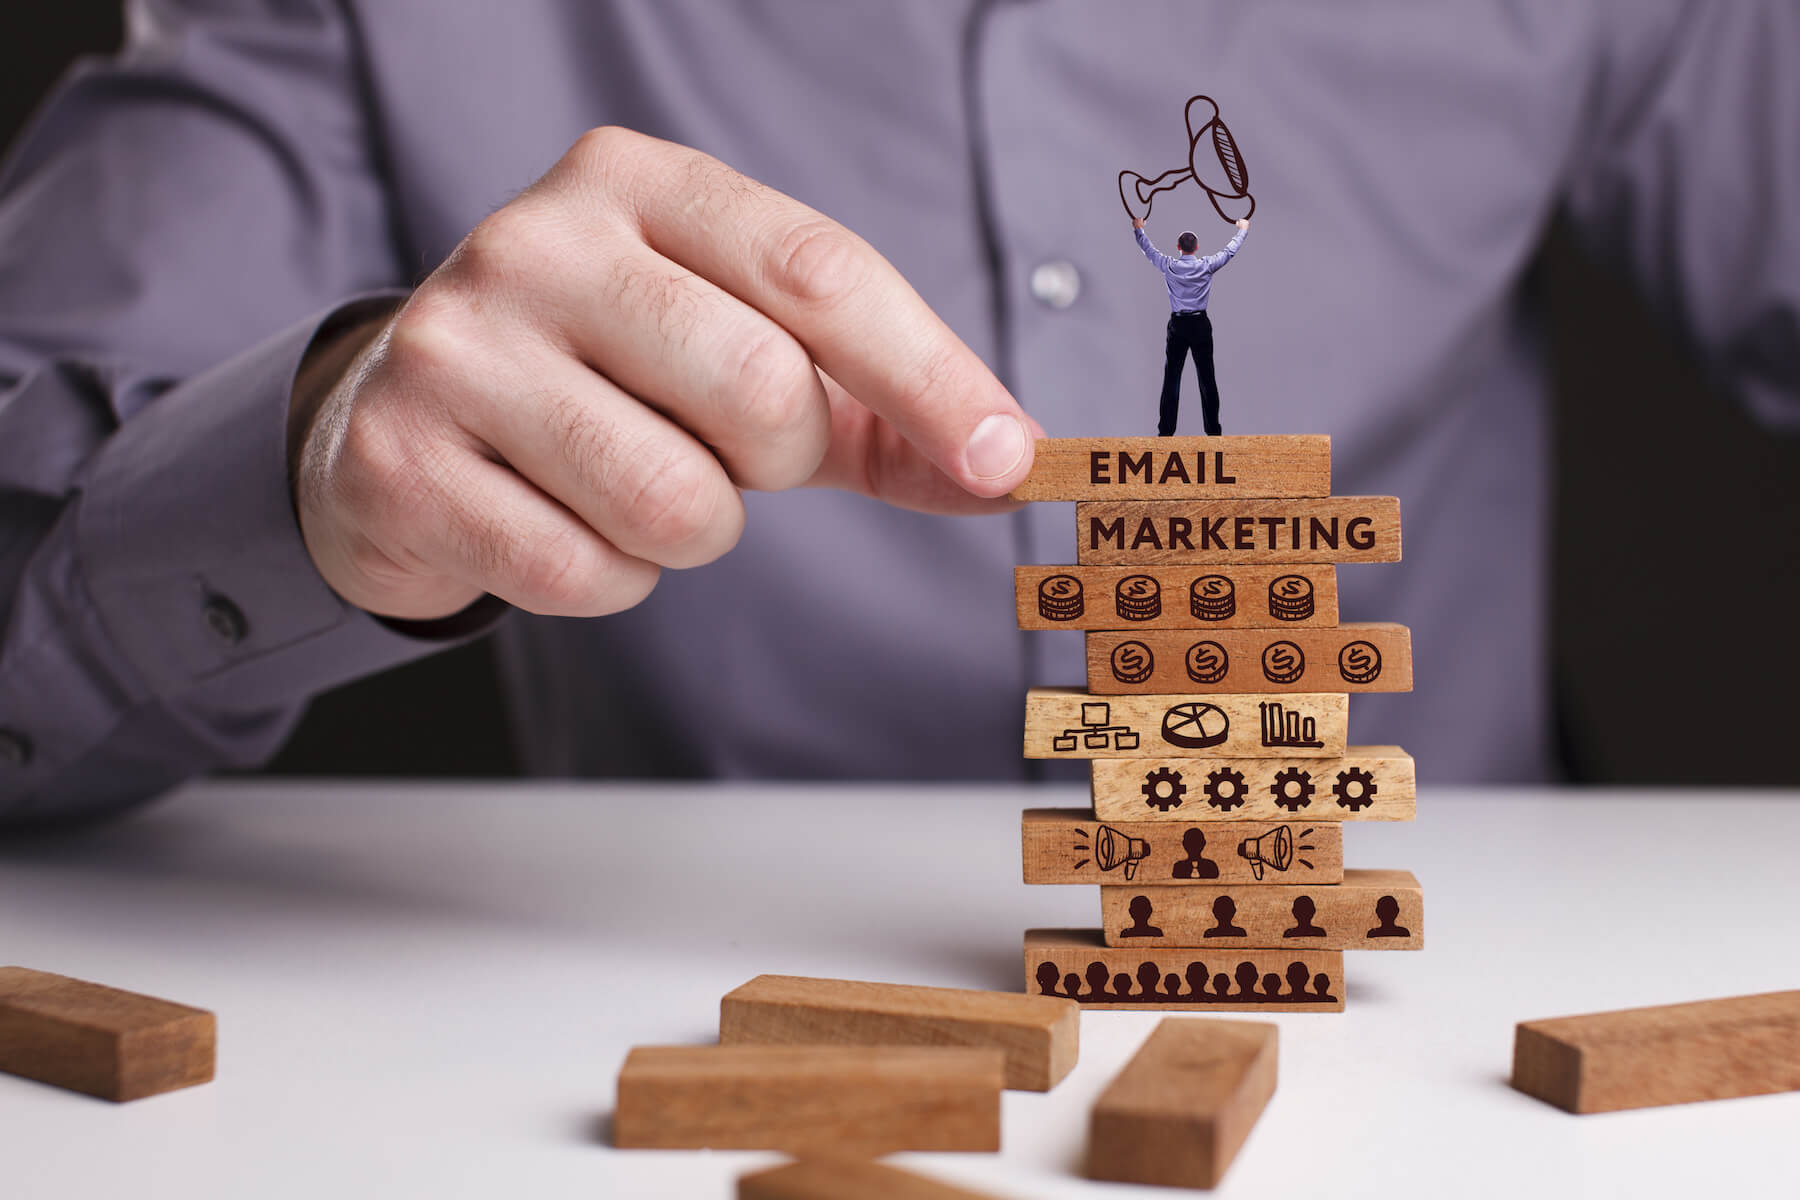 5 Steps to a Successful Email Marketing Campaign